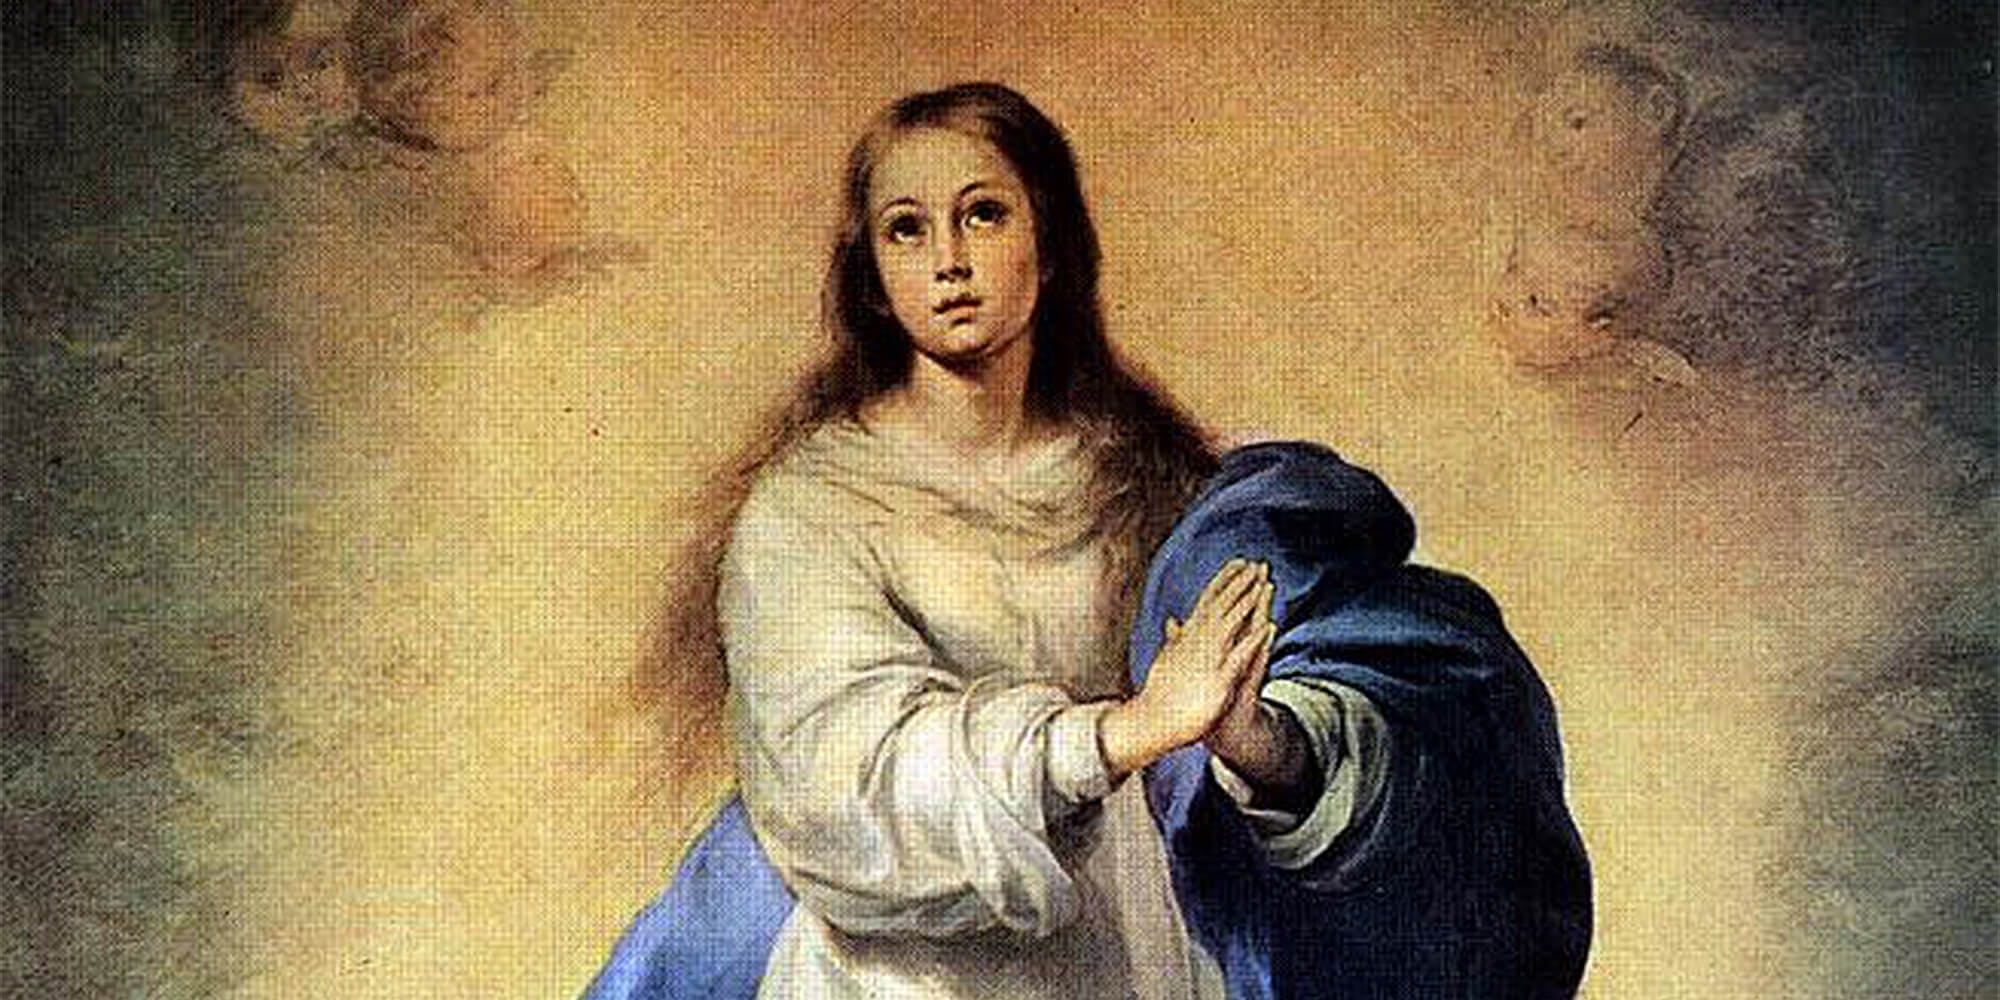 The Immaculate Conception by Bartolomé Esteban Murillo